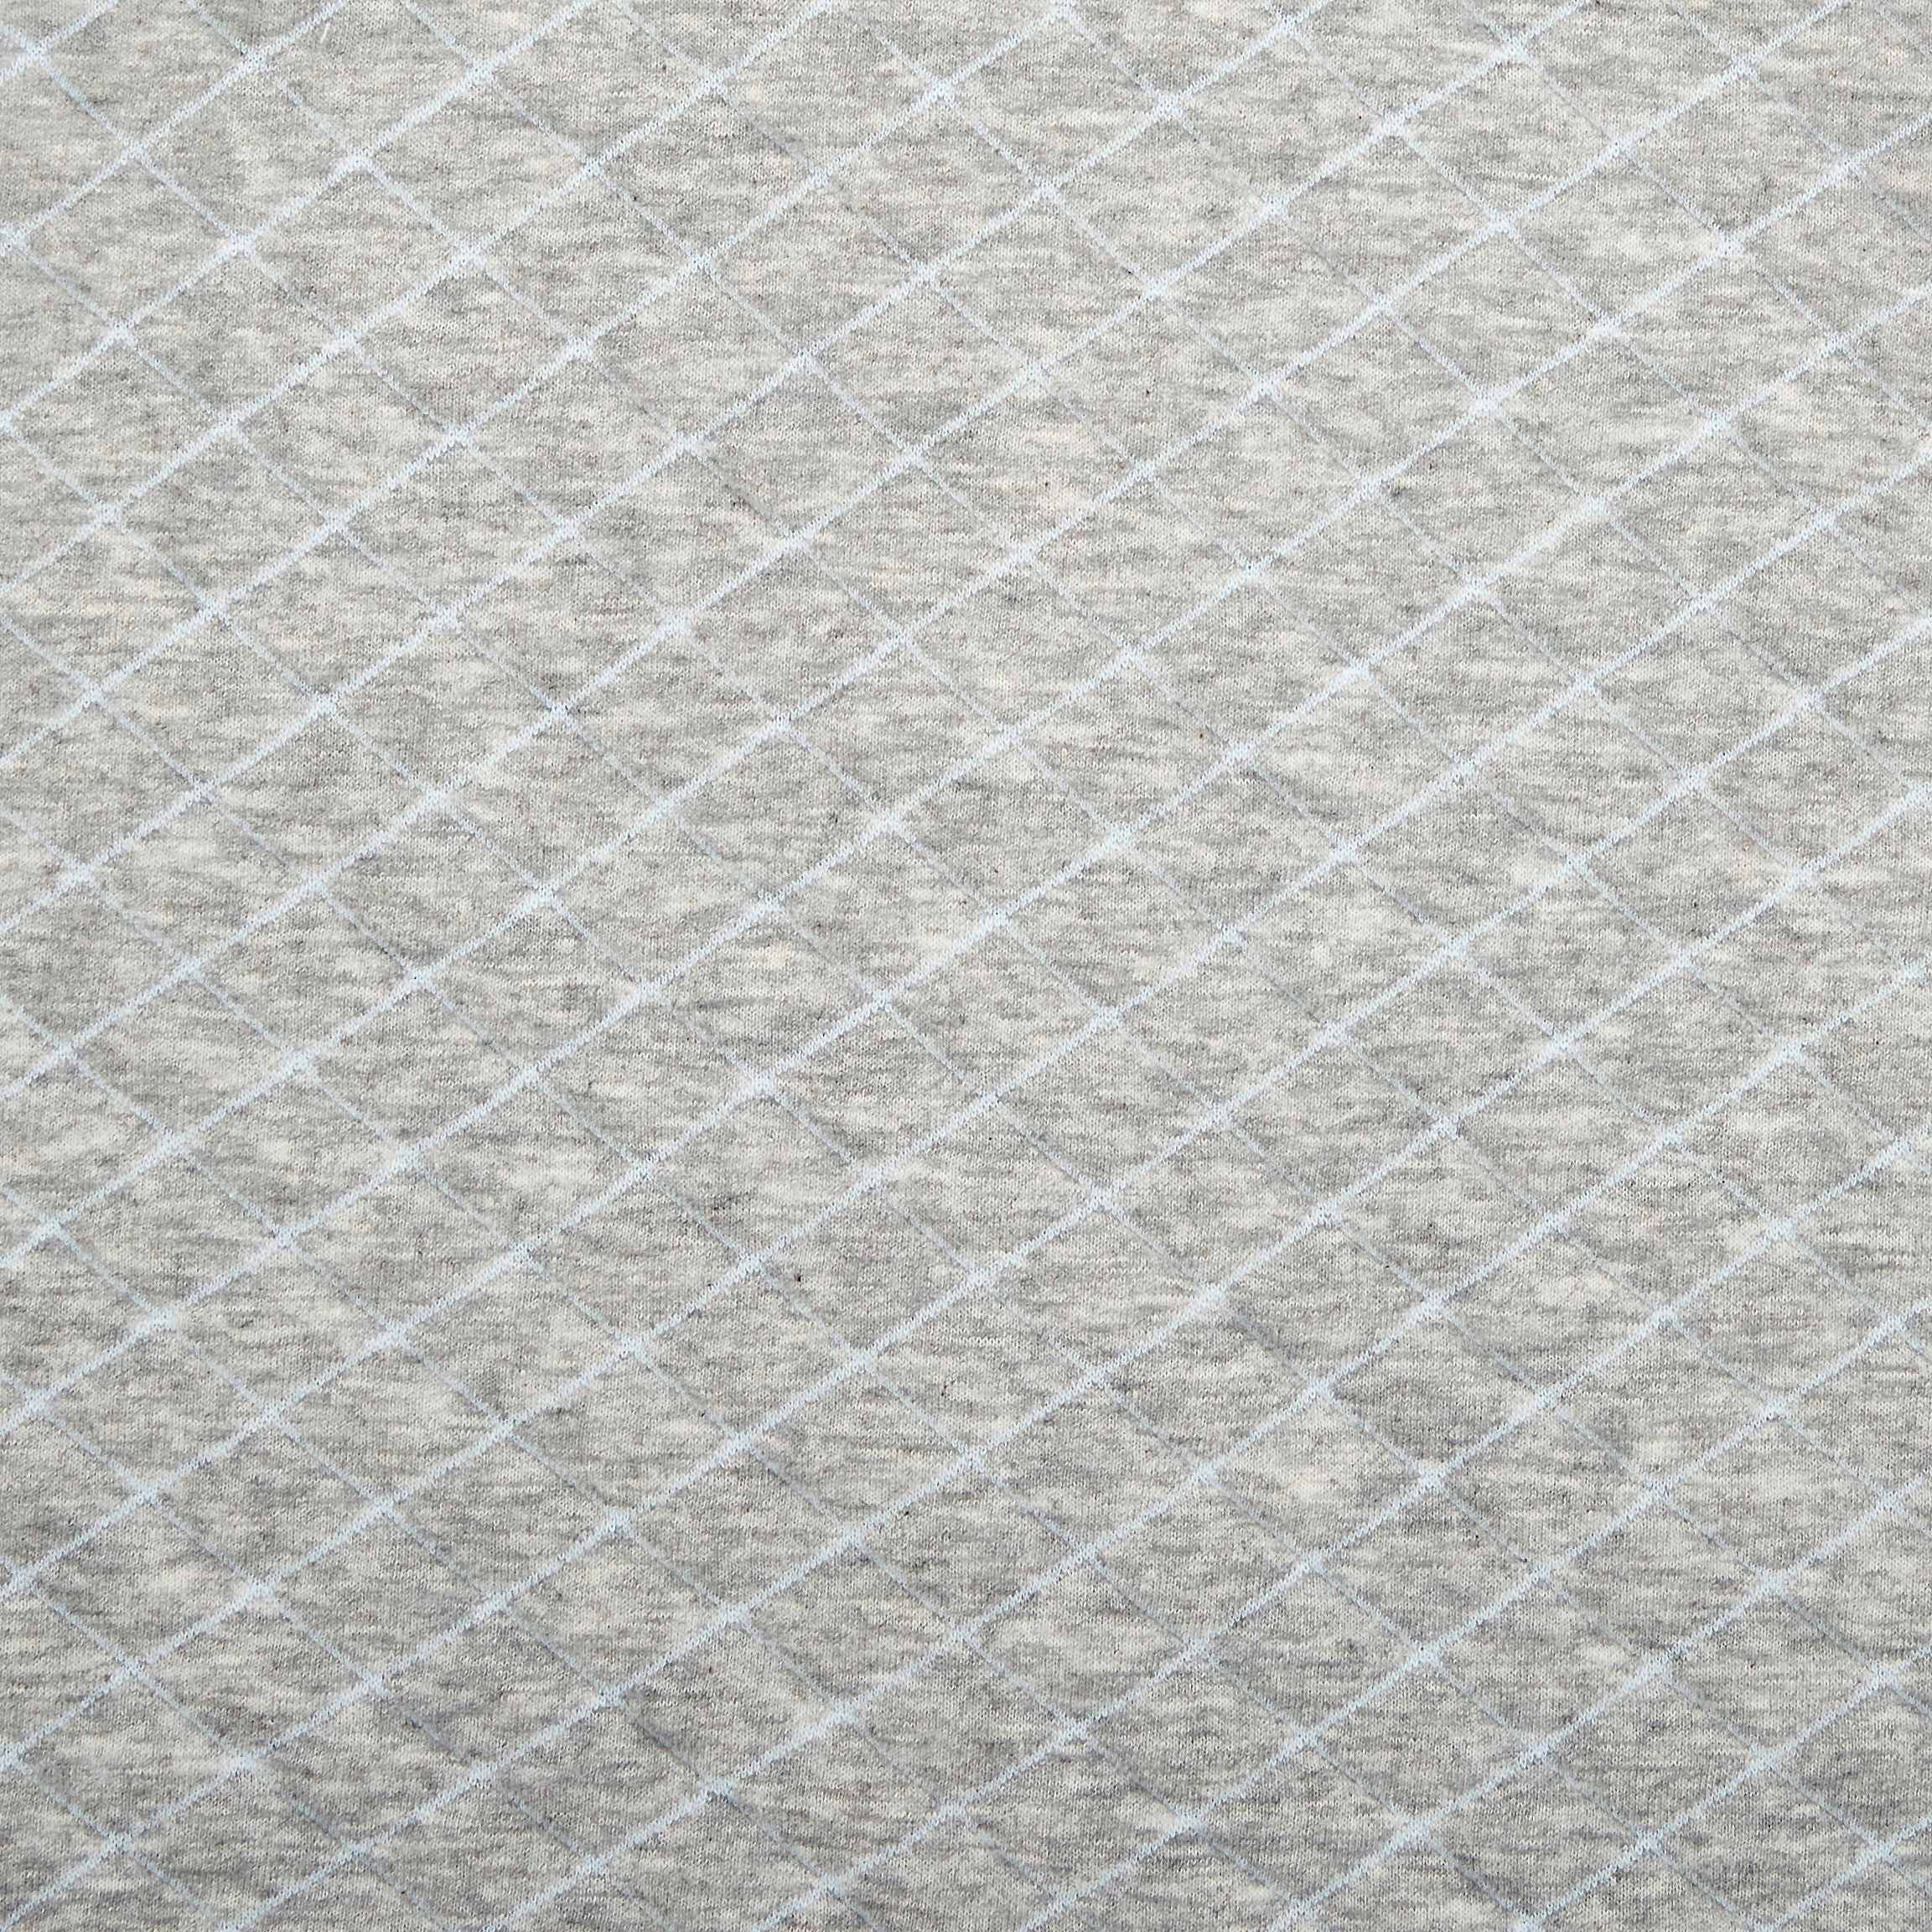 heather grey - blue stitch